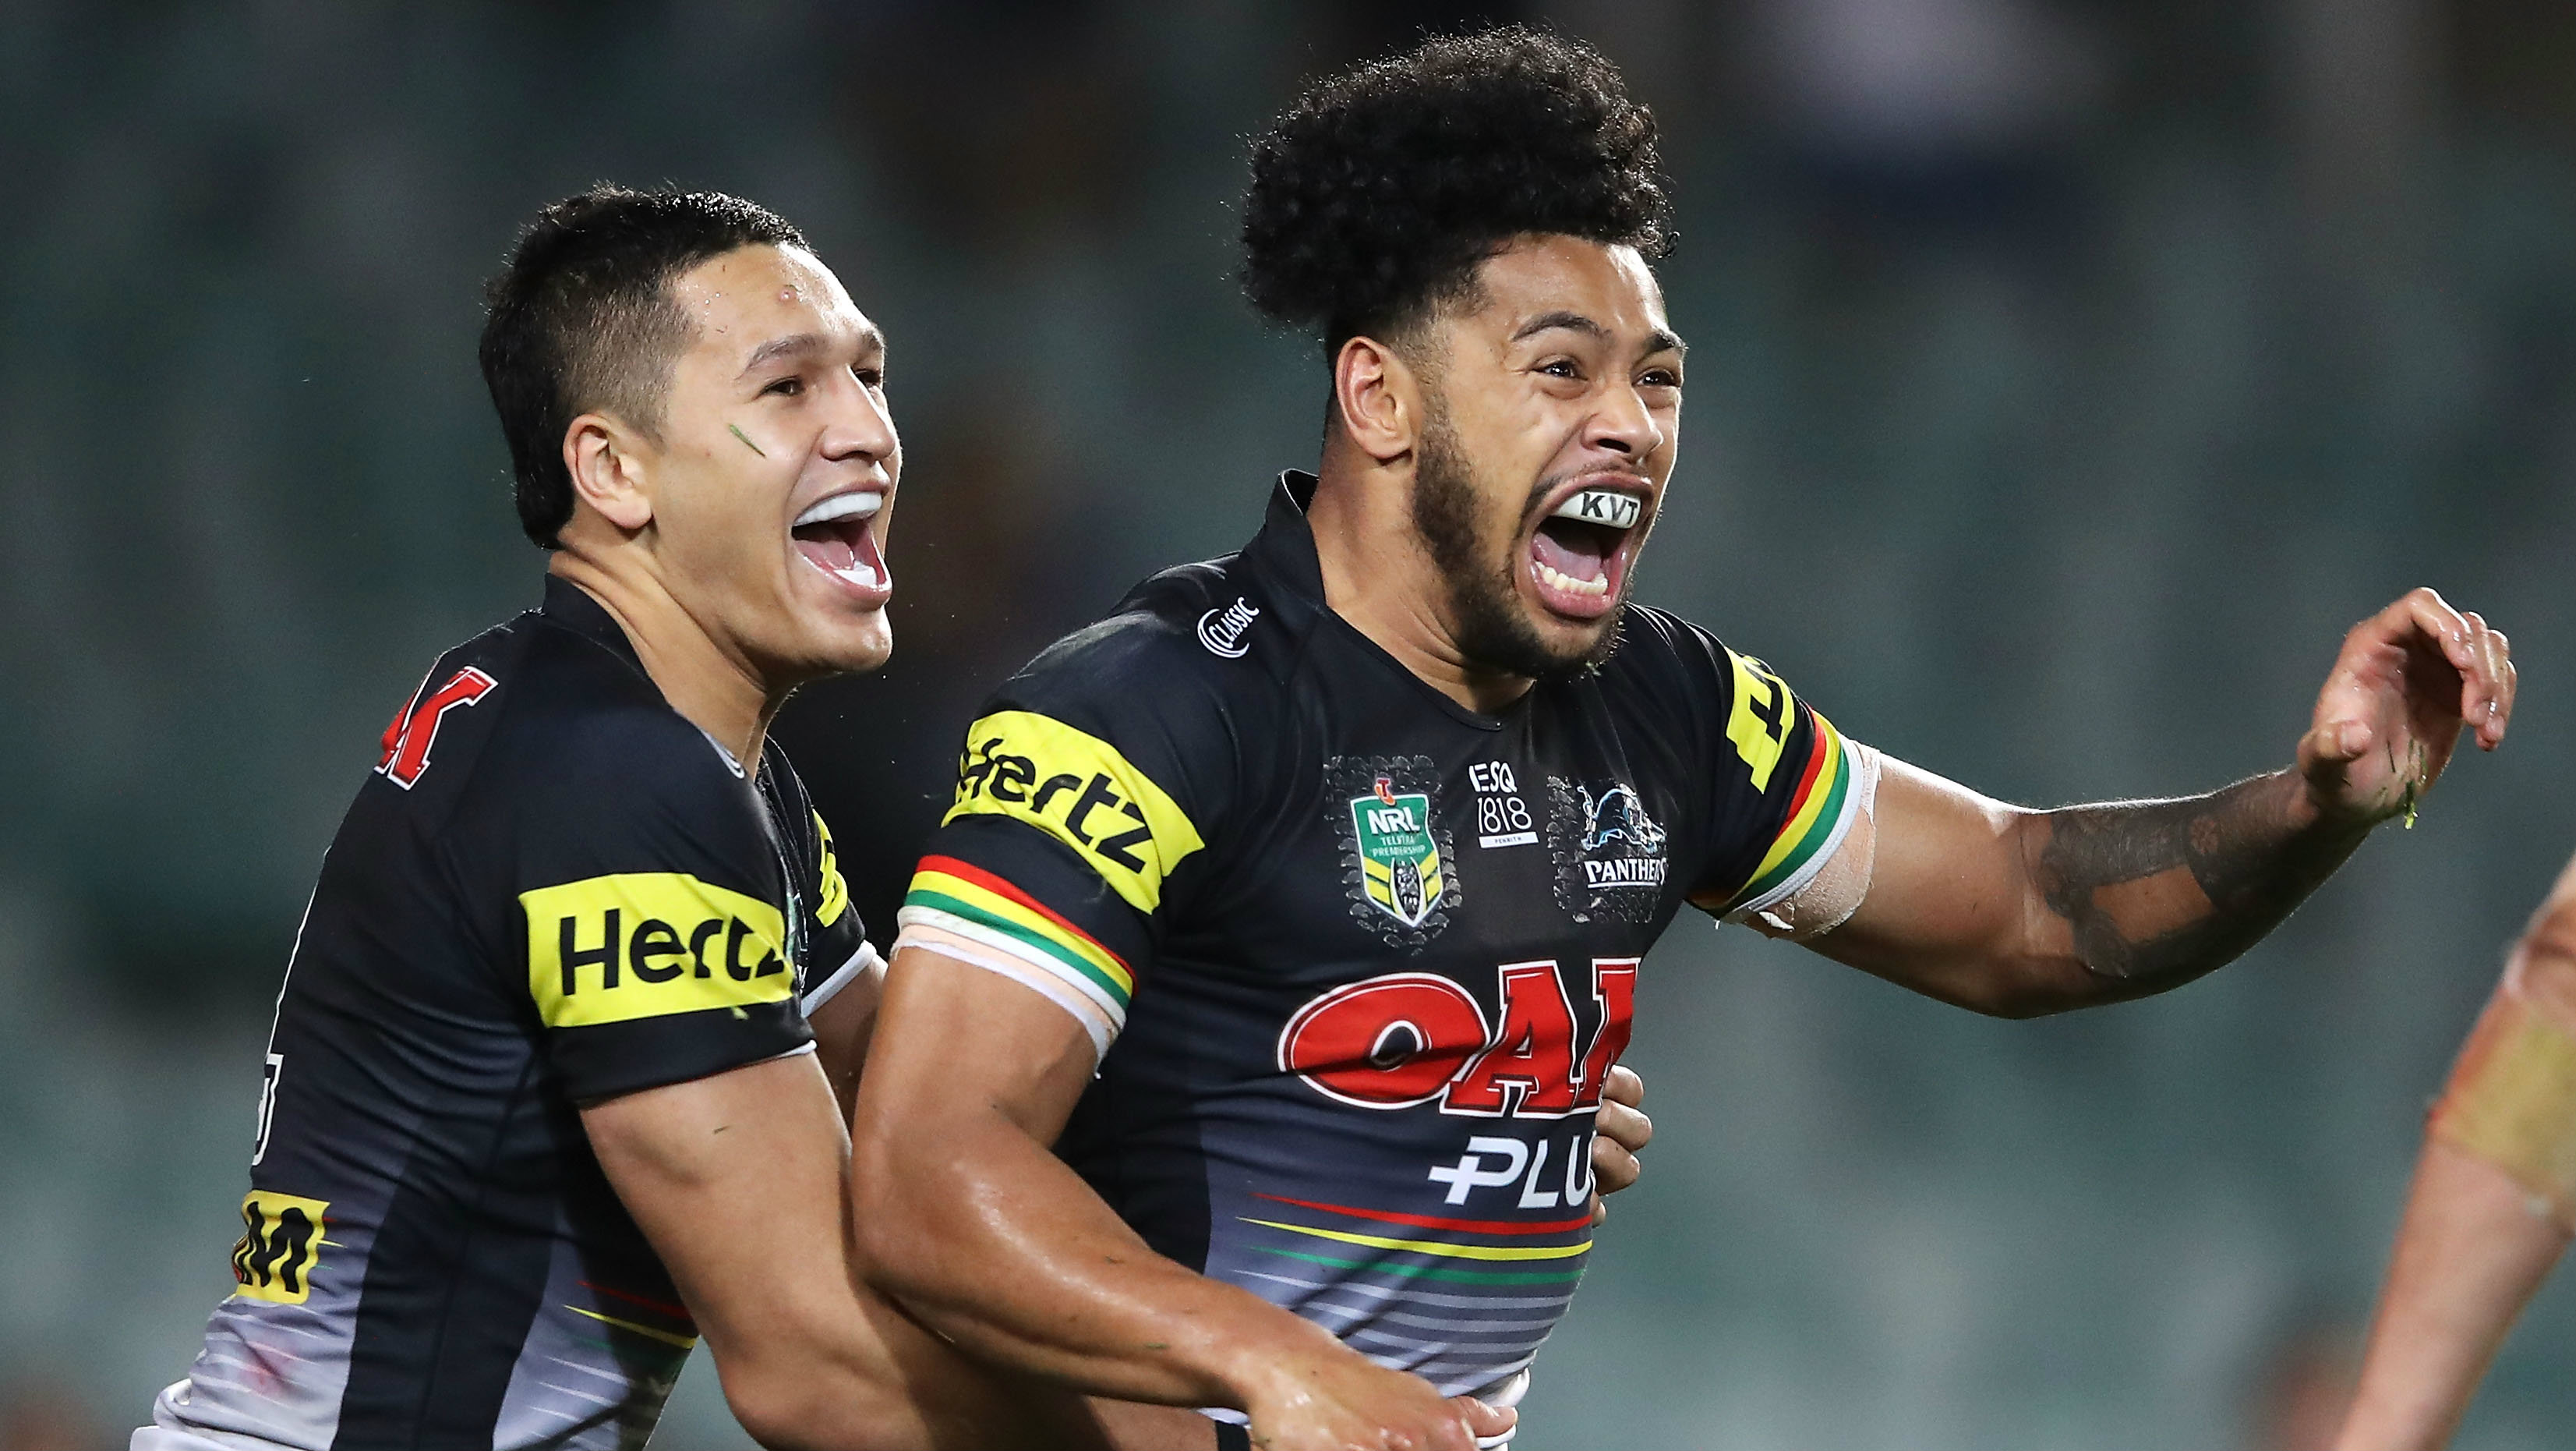 Parramatta Eels recruit Waqa Blake gives insight on his Panthers exit ahead of club debut